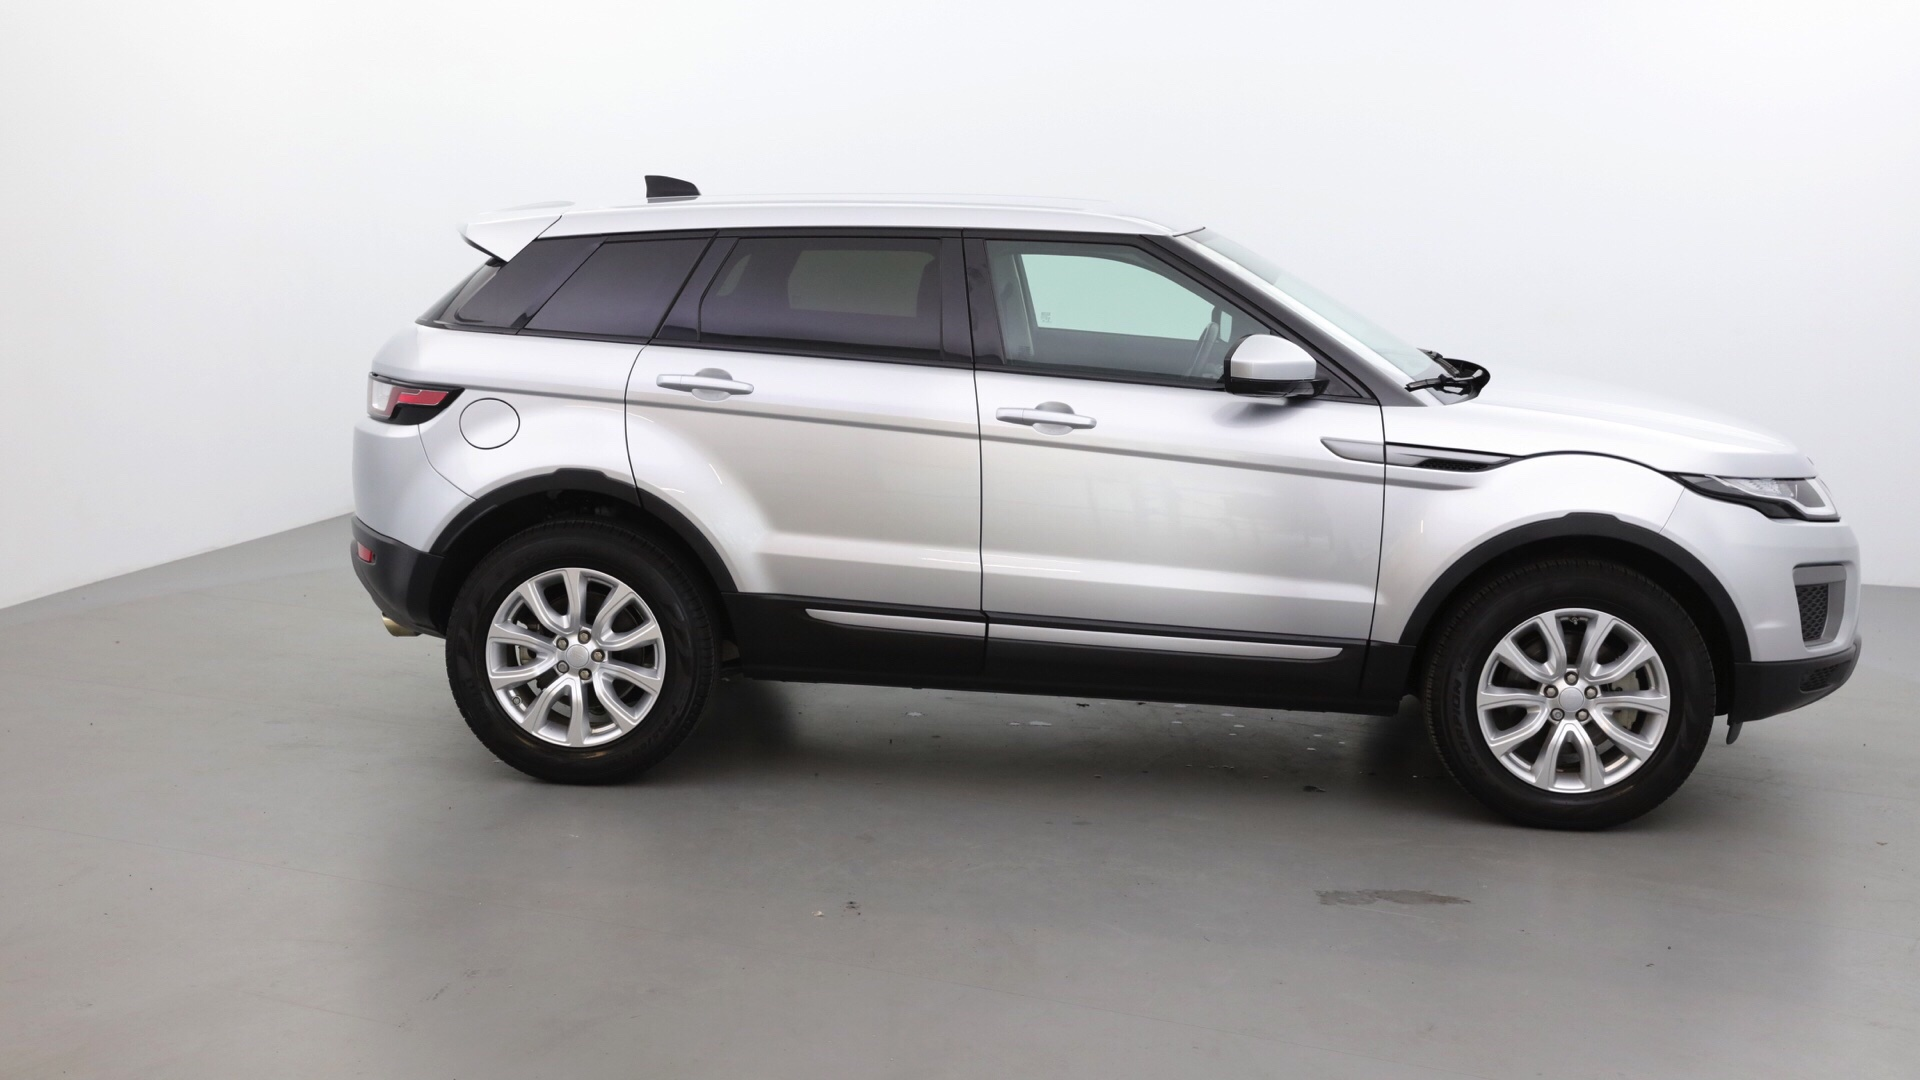 LAND-ROVER EVOQUE 2.0 TD4 150 PURE BVA MARK IV - Miniature 4